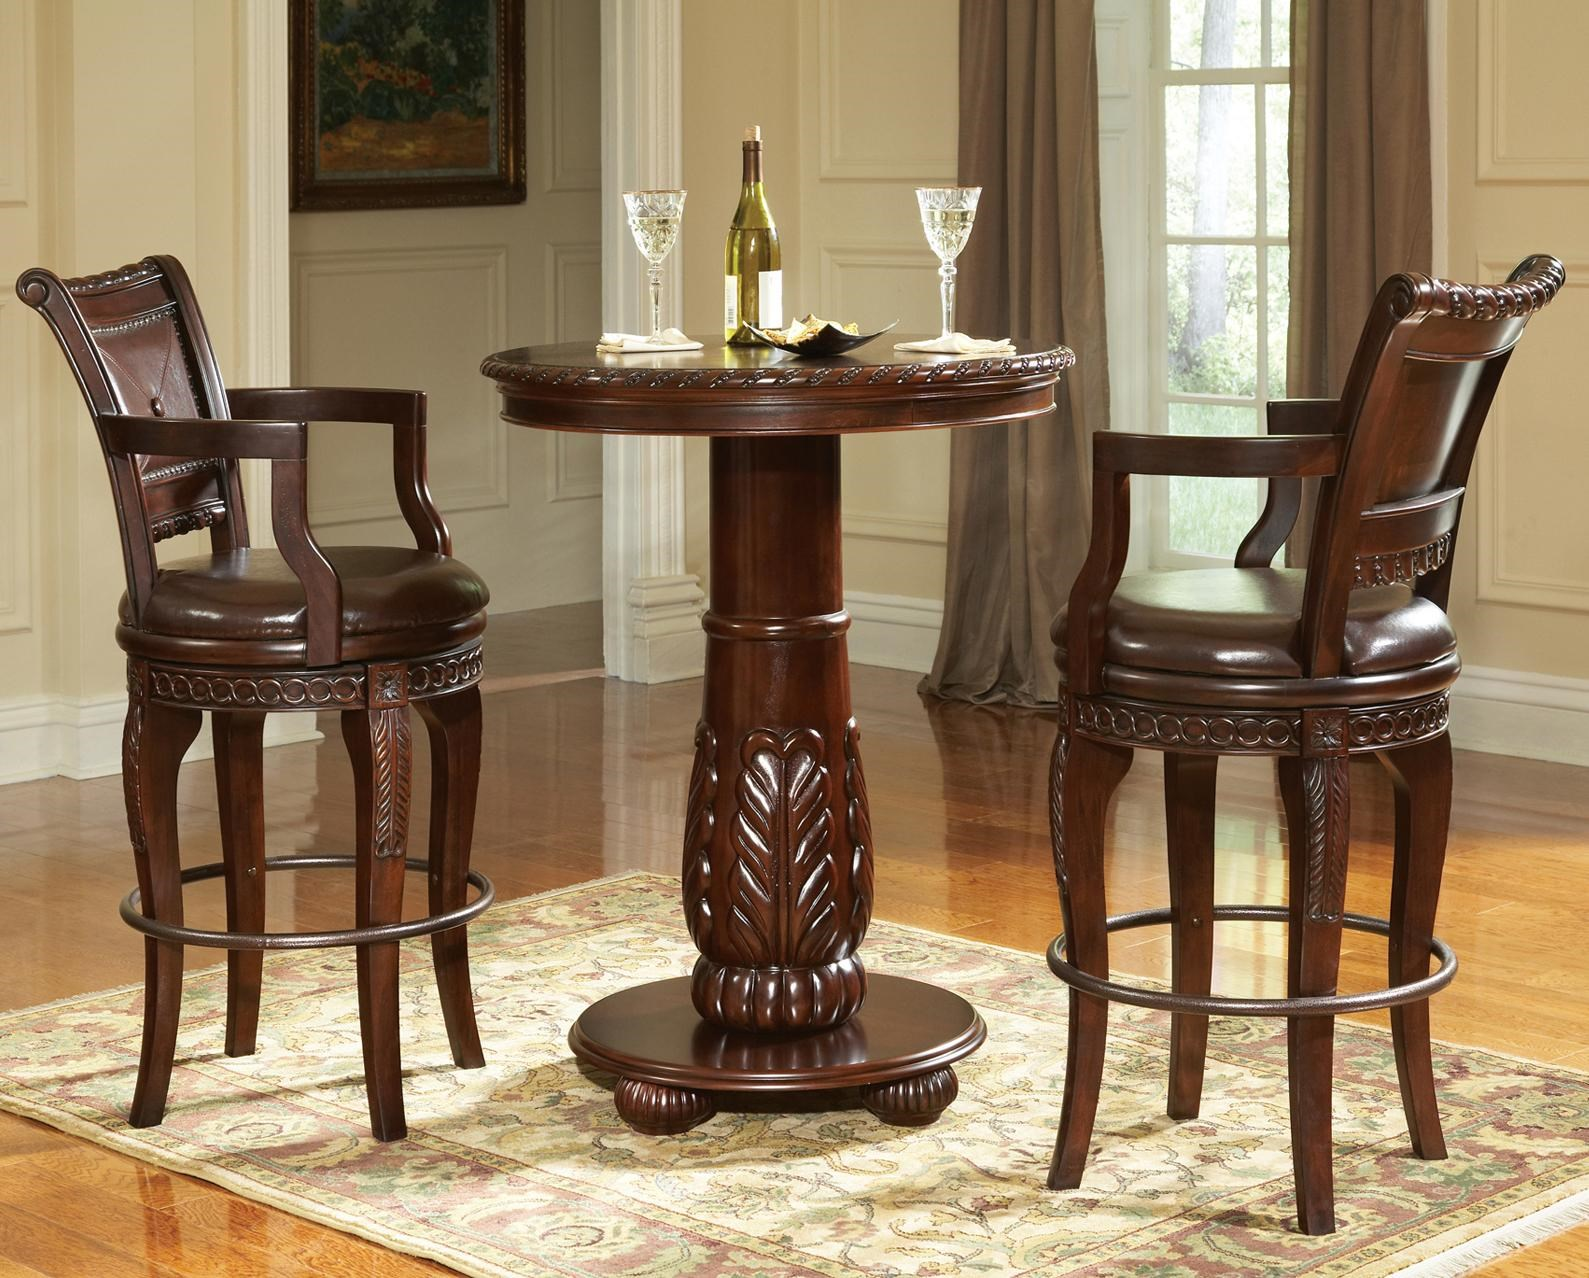 Merveilleux Steve Silver Antoinette 3 Piece Pedestal Pub Table U0026 Bar Stool Set